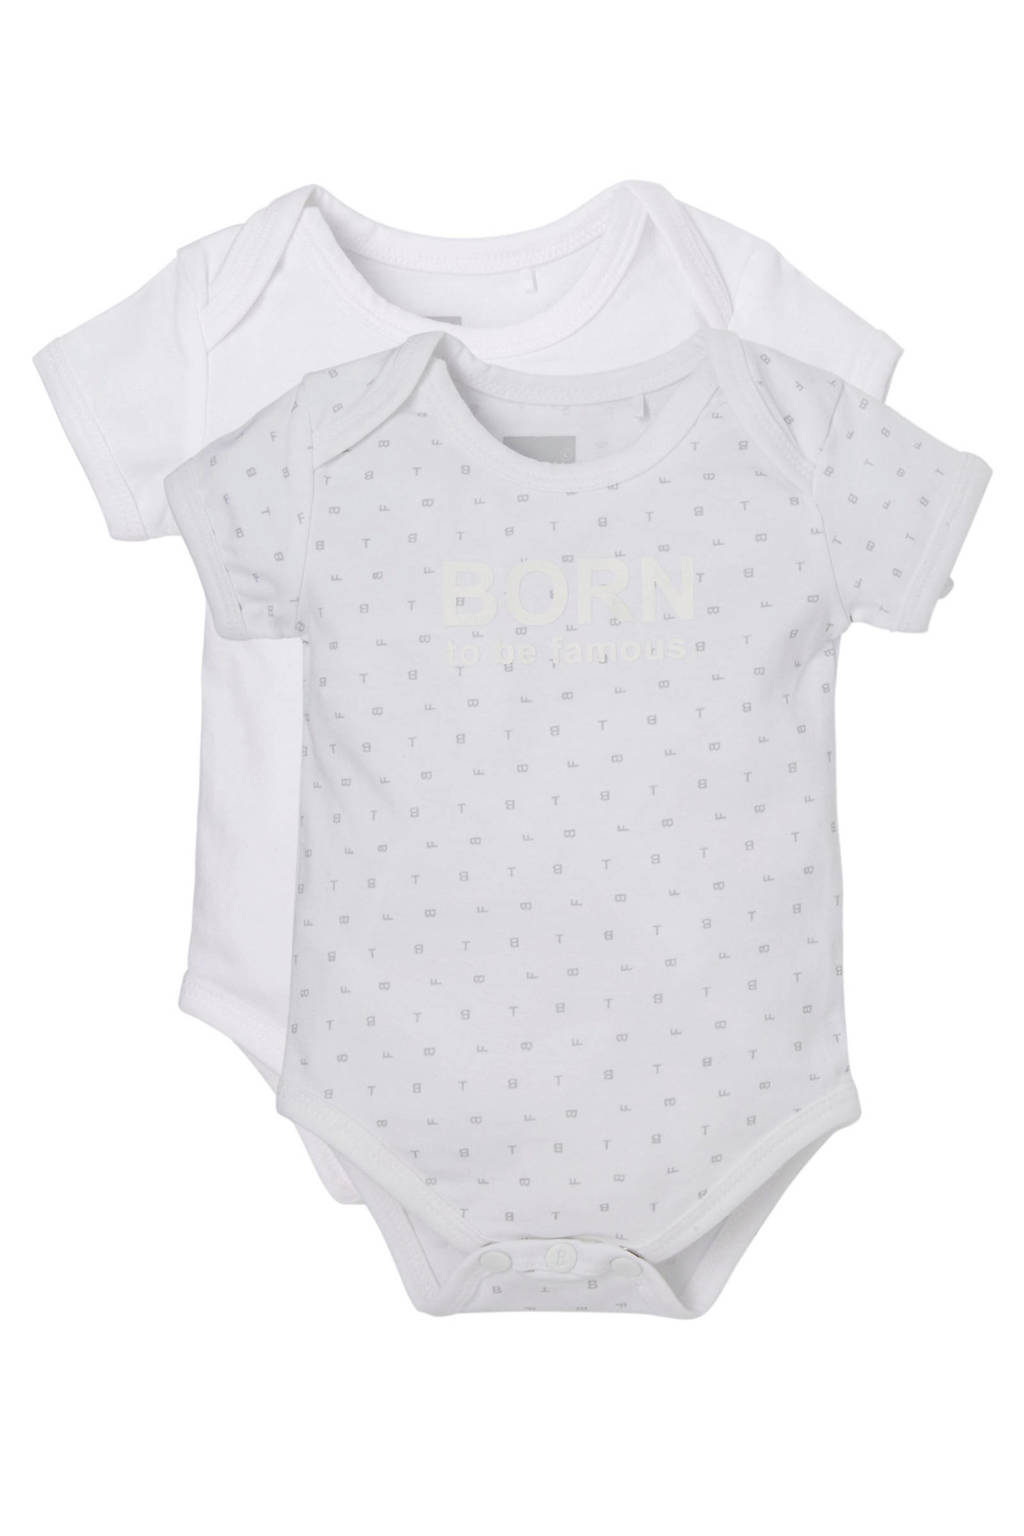 born to be famous. newborn baby romper, Wit